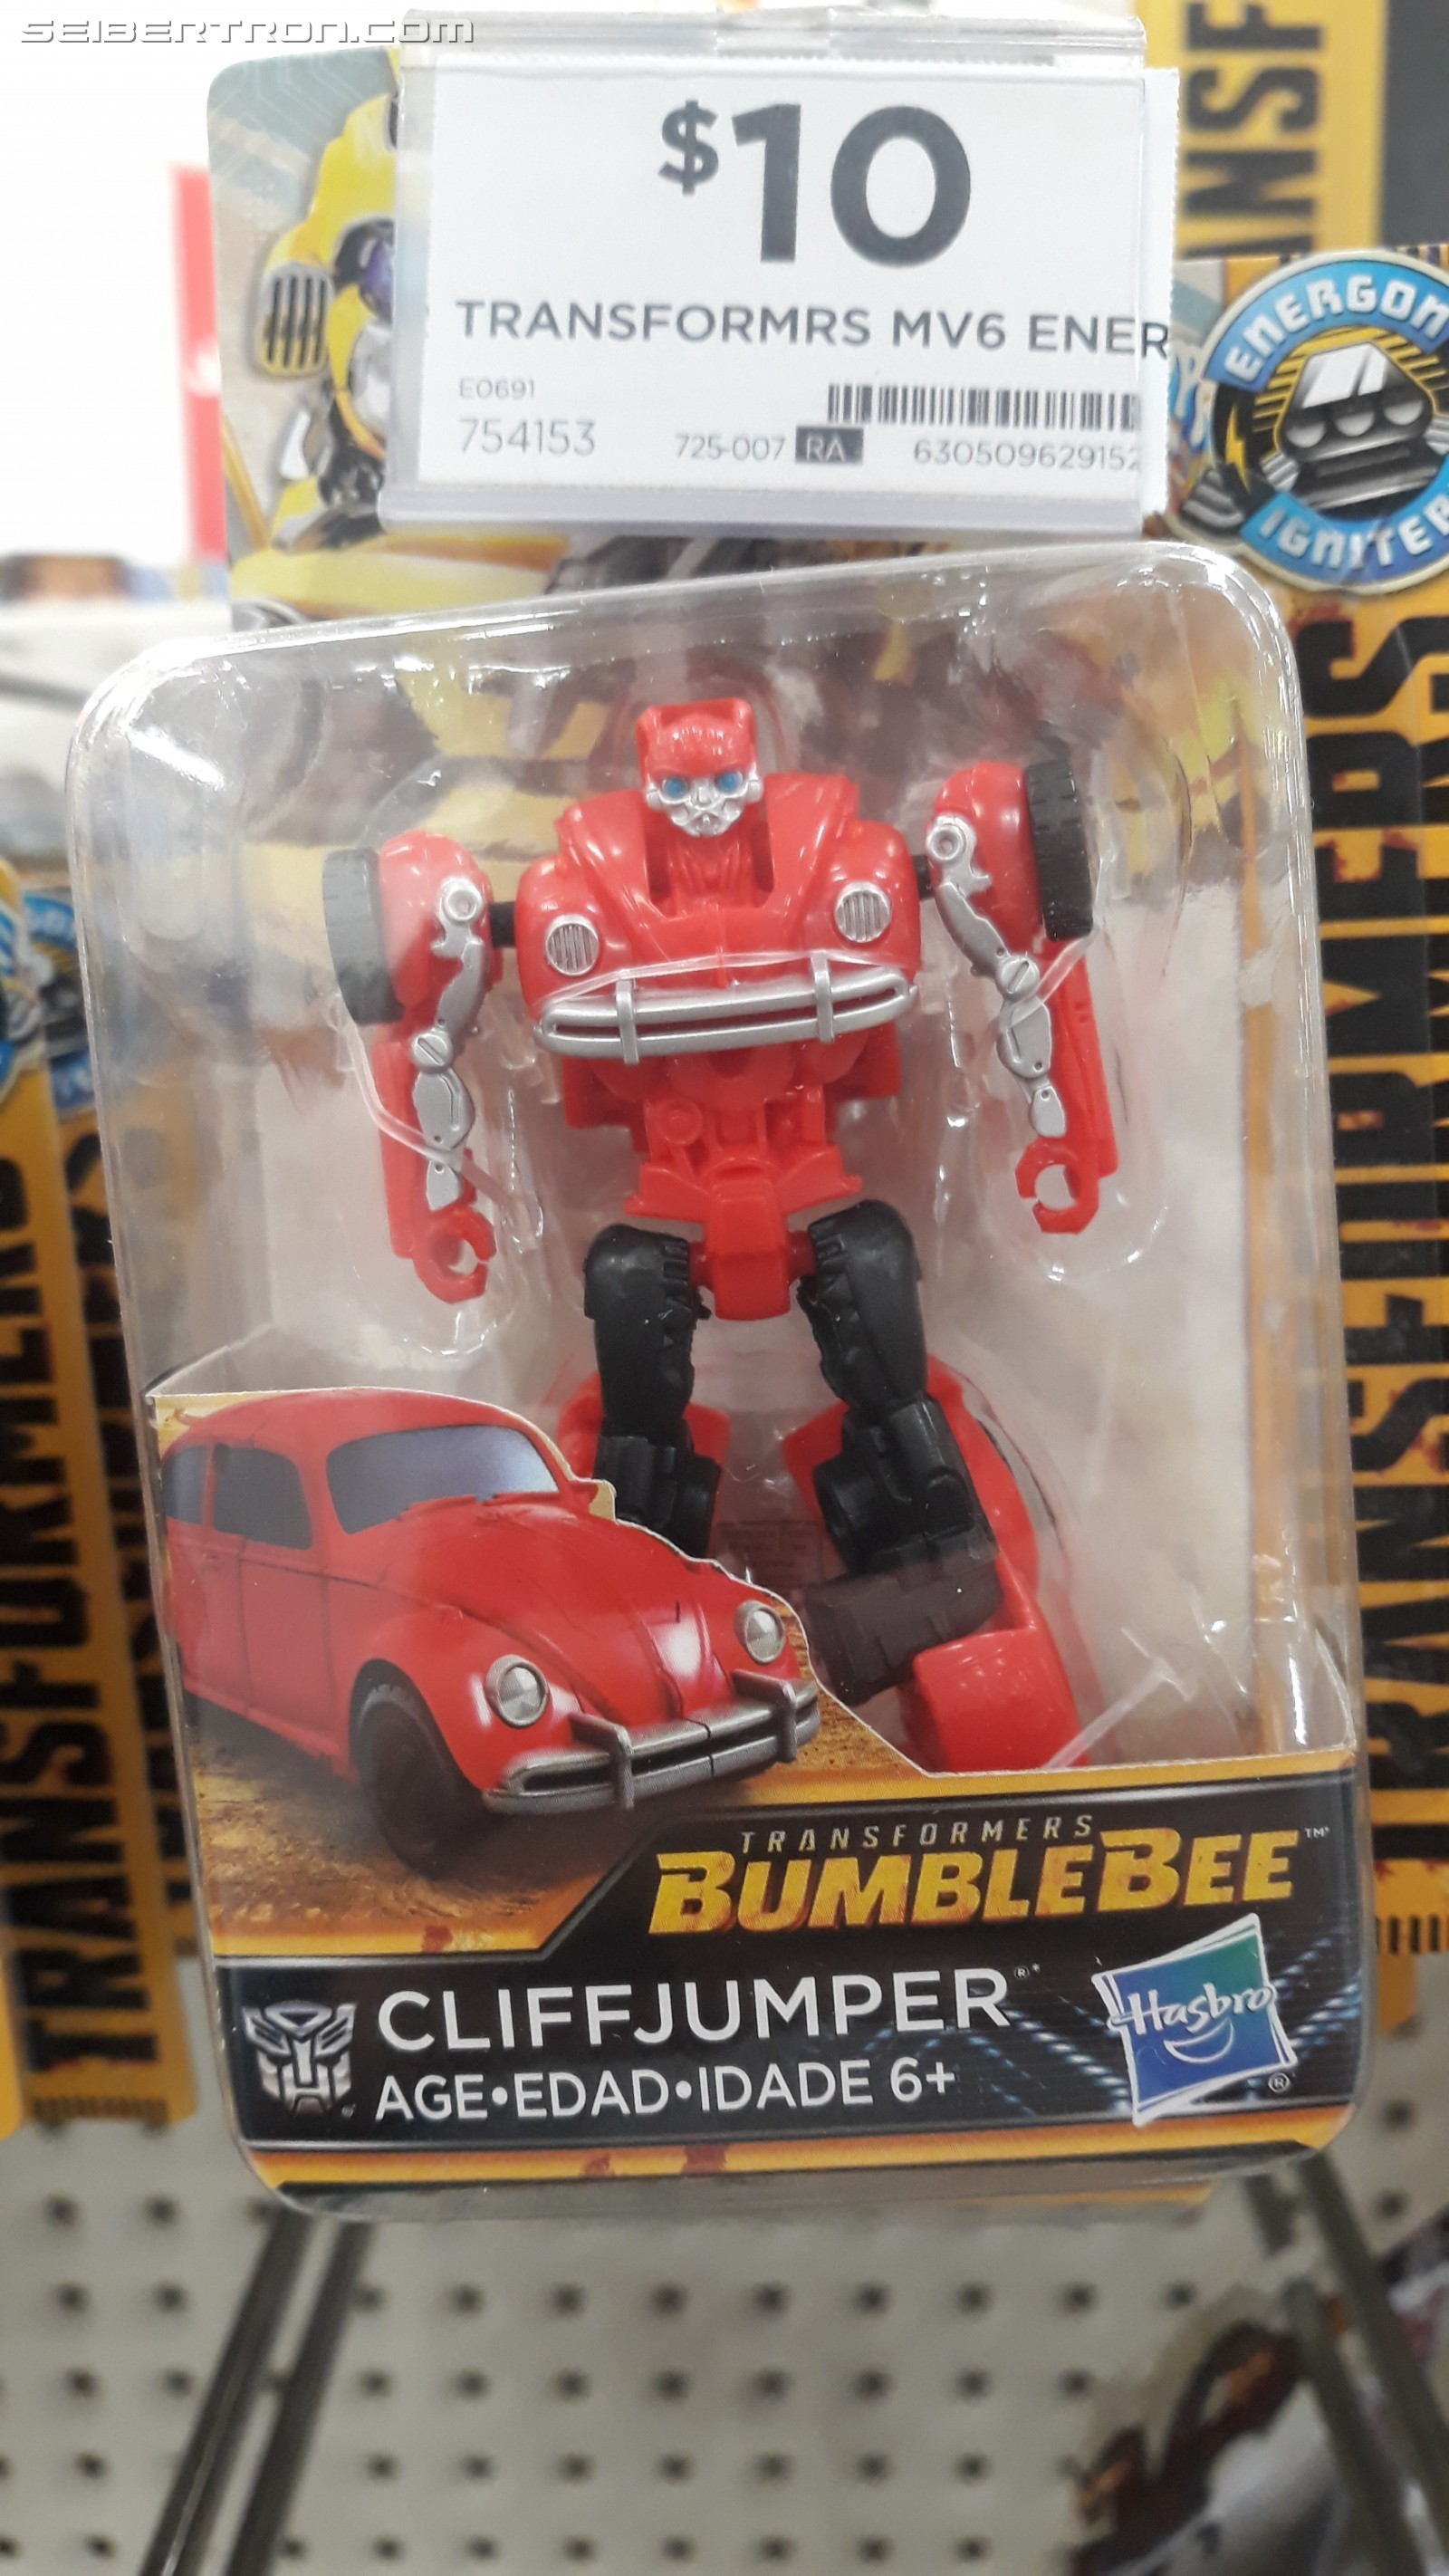 Transformers News: Better Look at Bumblebee Movie Cliffjumper Toy